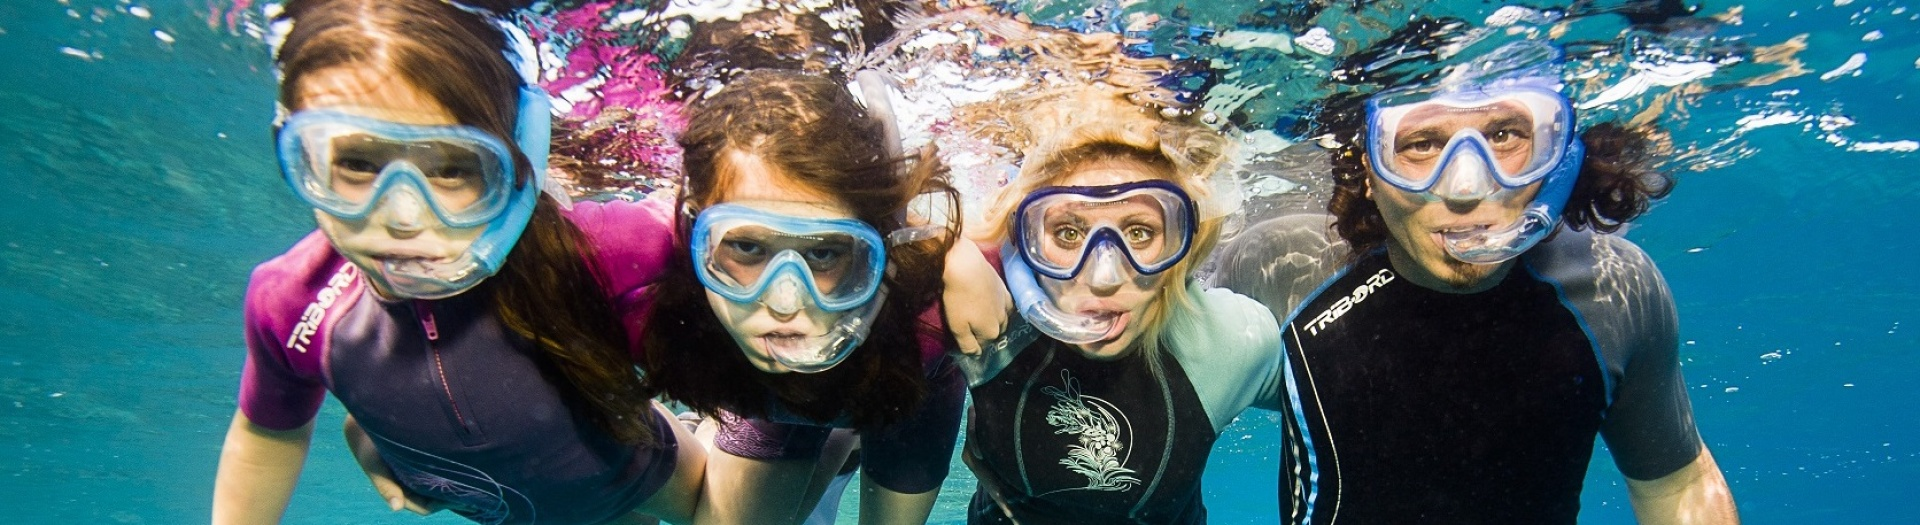 Egypt snorkeling - Underwater diving and snorkeling with DUNE Red Sea | DUNE Red Sea